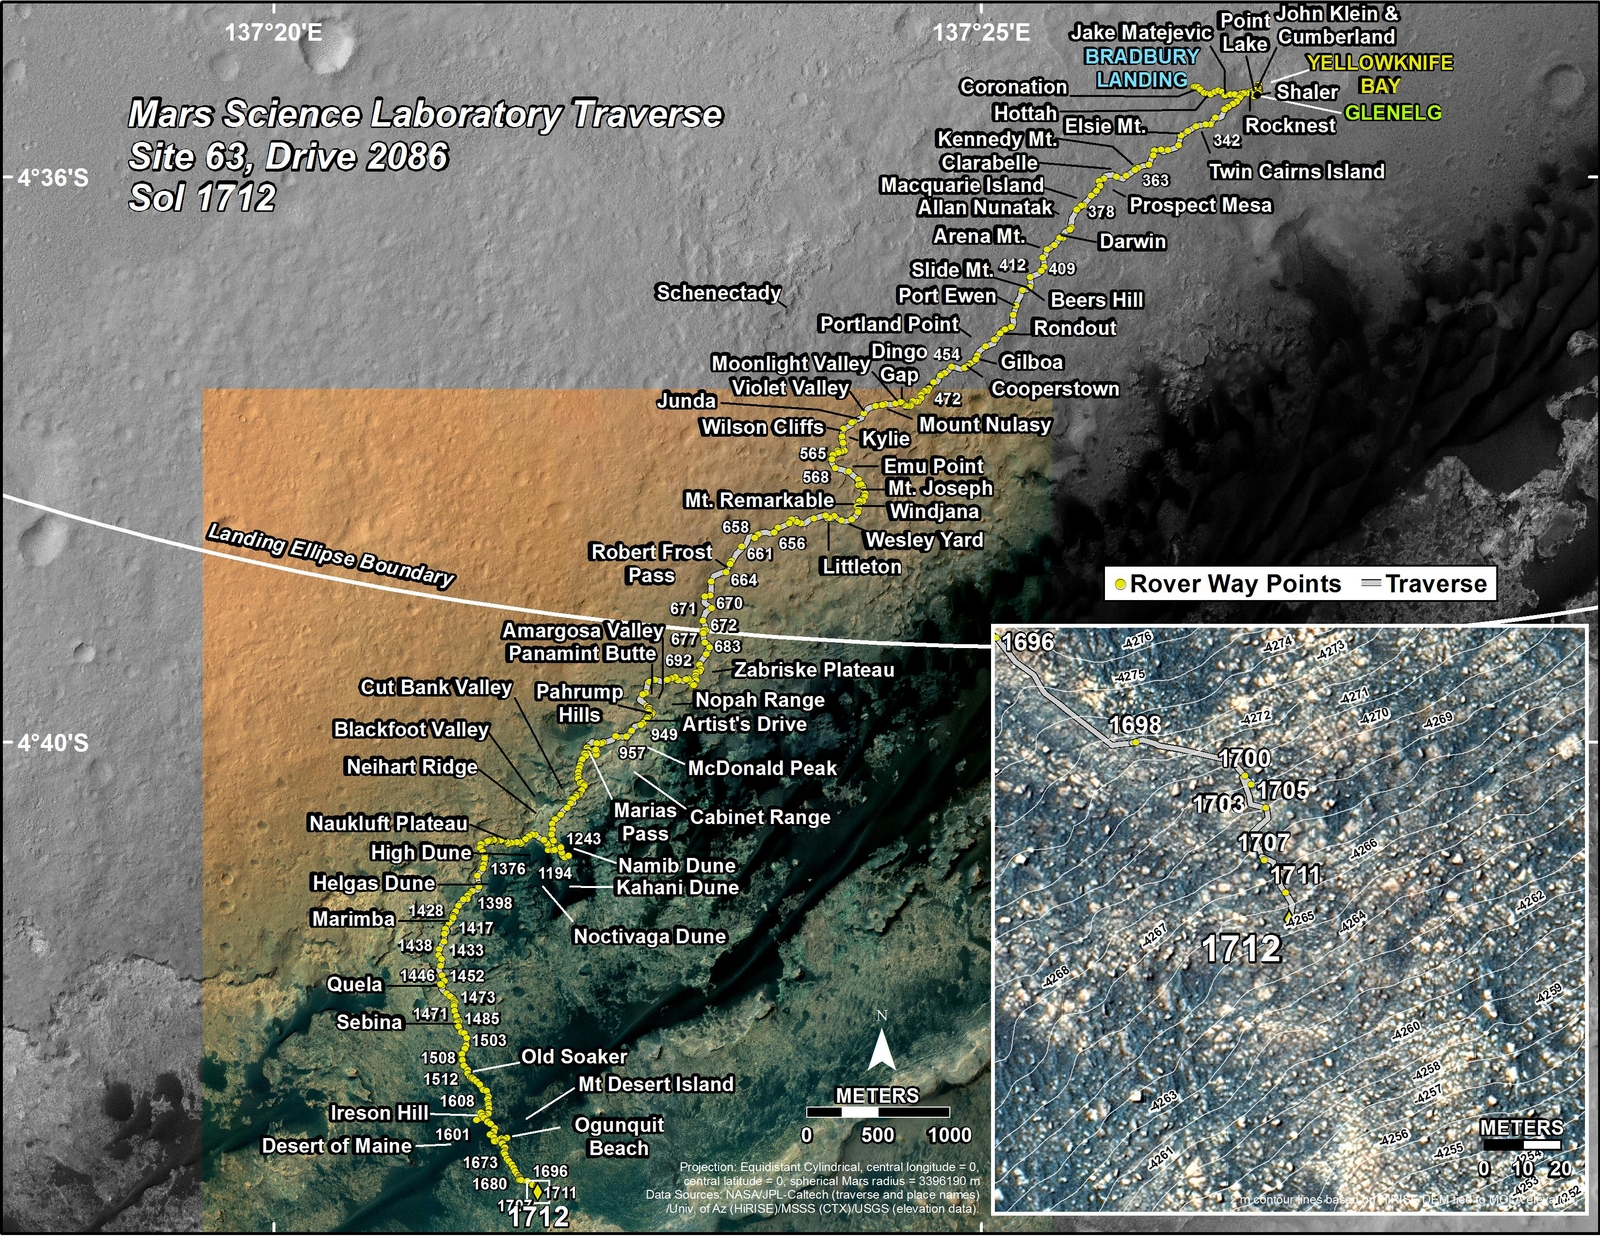 This map shows the route driven by NASA's Mars rover Curiosity through the 1712 Martian day, or sol, of the rover's mission on Mars (May 31, 2017).